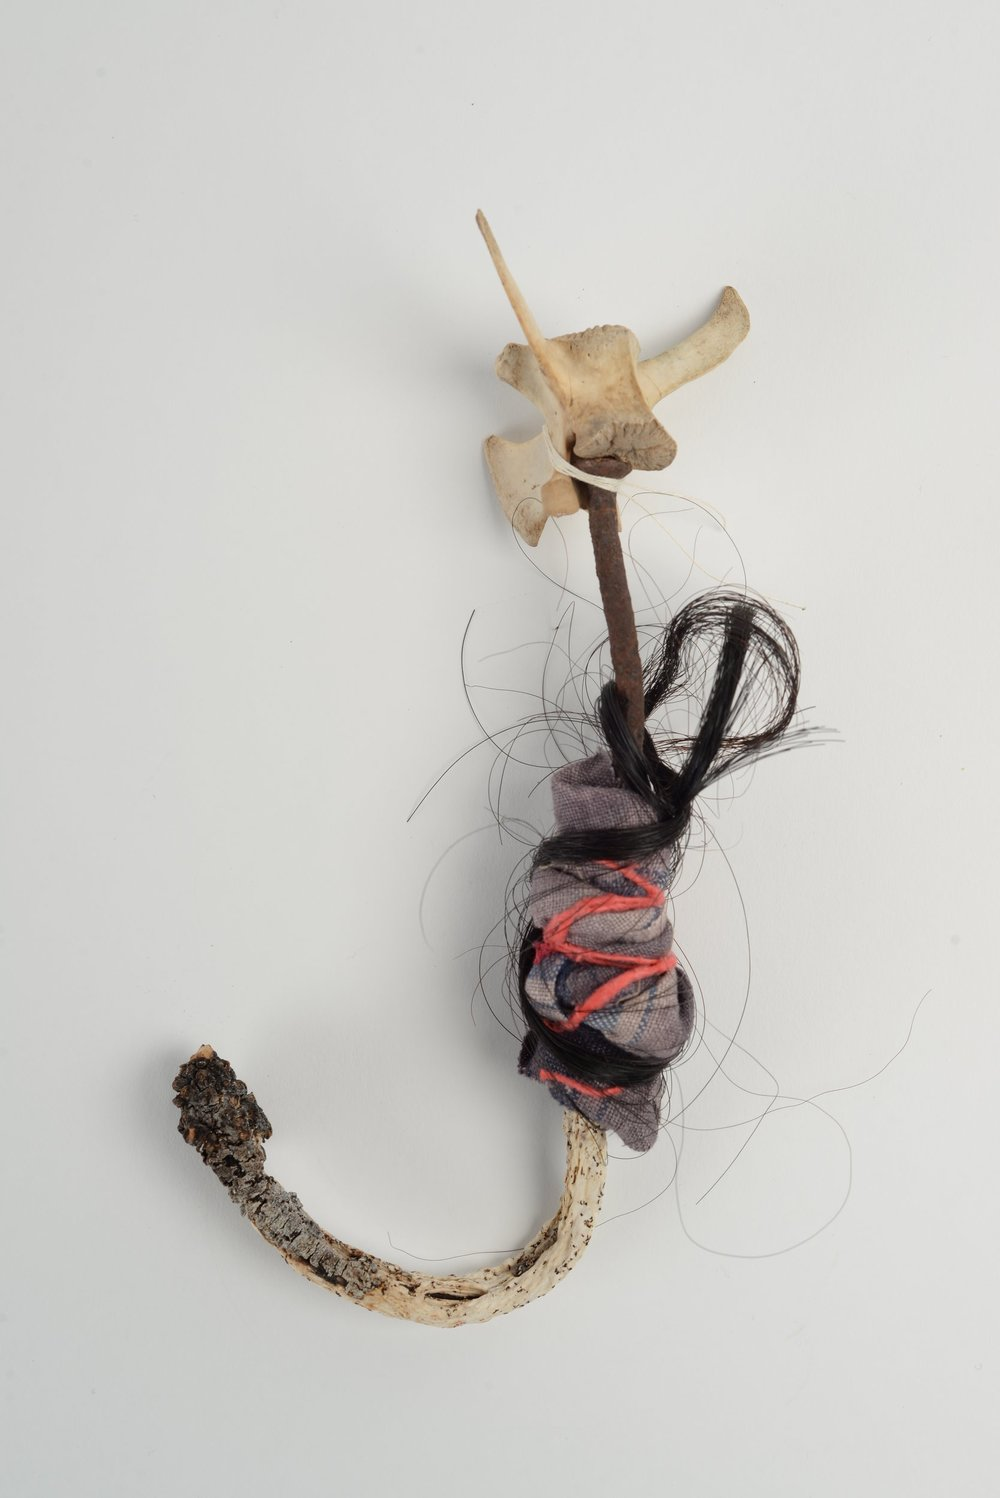 Untitled (nail),   2018  seaweed, deer vertebrae, rusty nail, horse-hair, cloth, string h 25cm